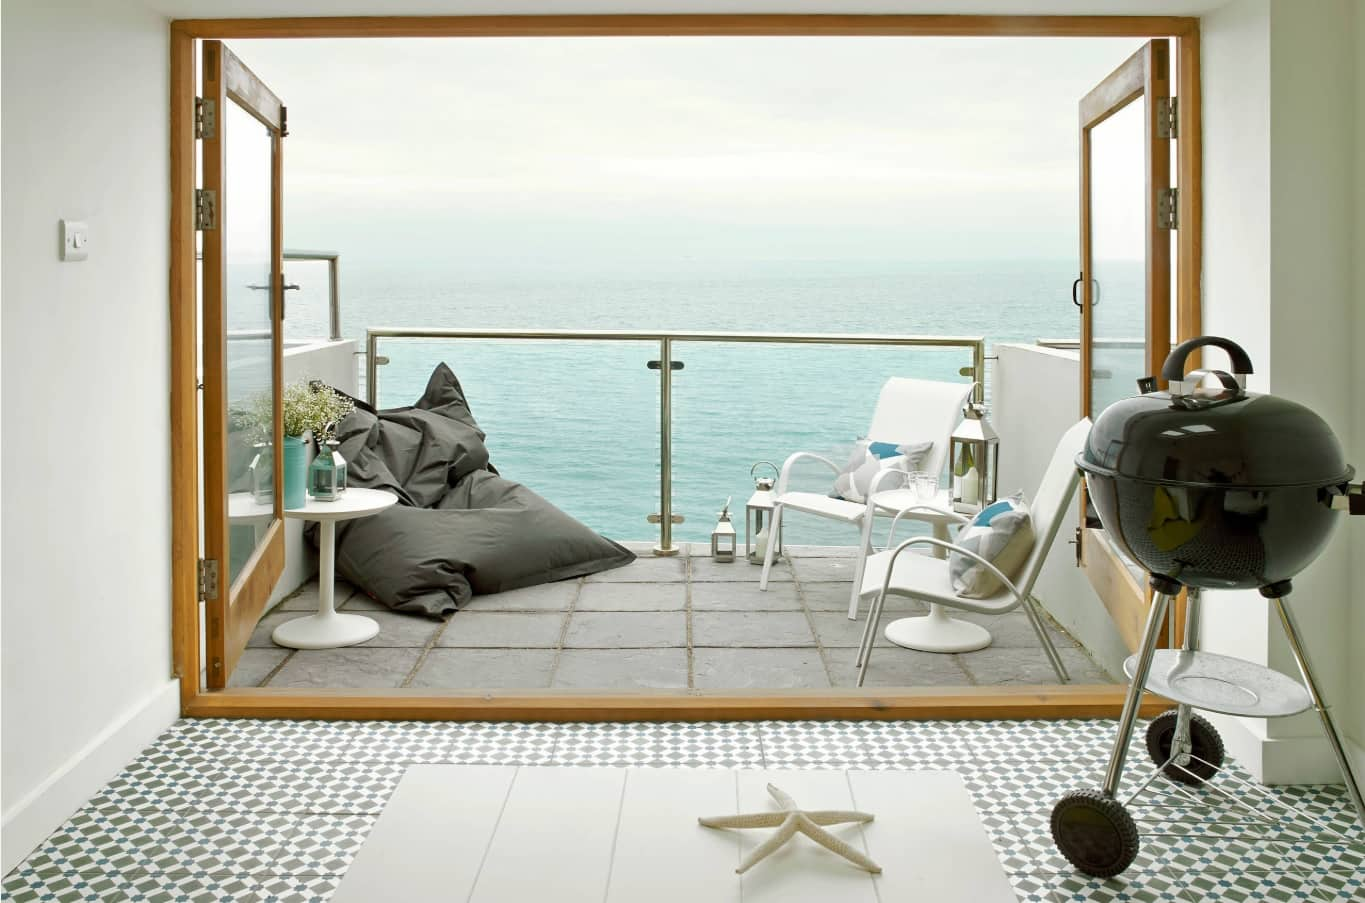 Top 10 Small Apartment Patio Ideas with Photos. Panoramic window to the balcony in the modern oceanside condo